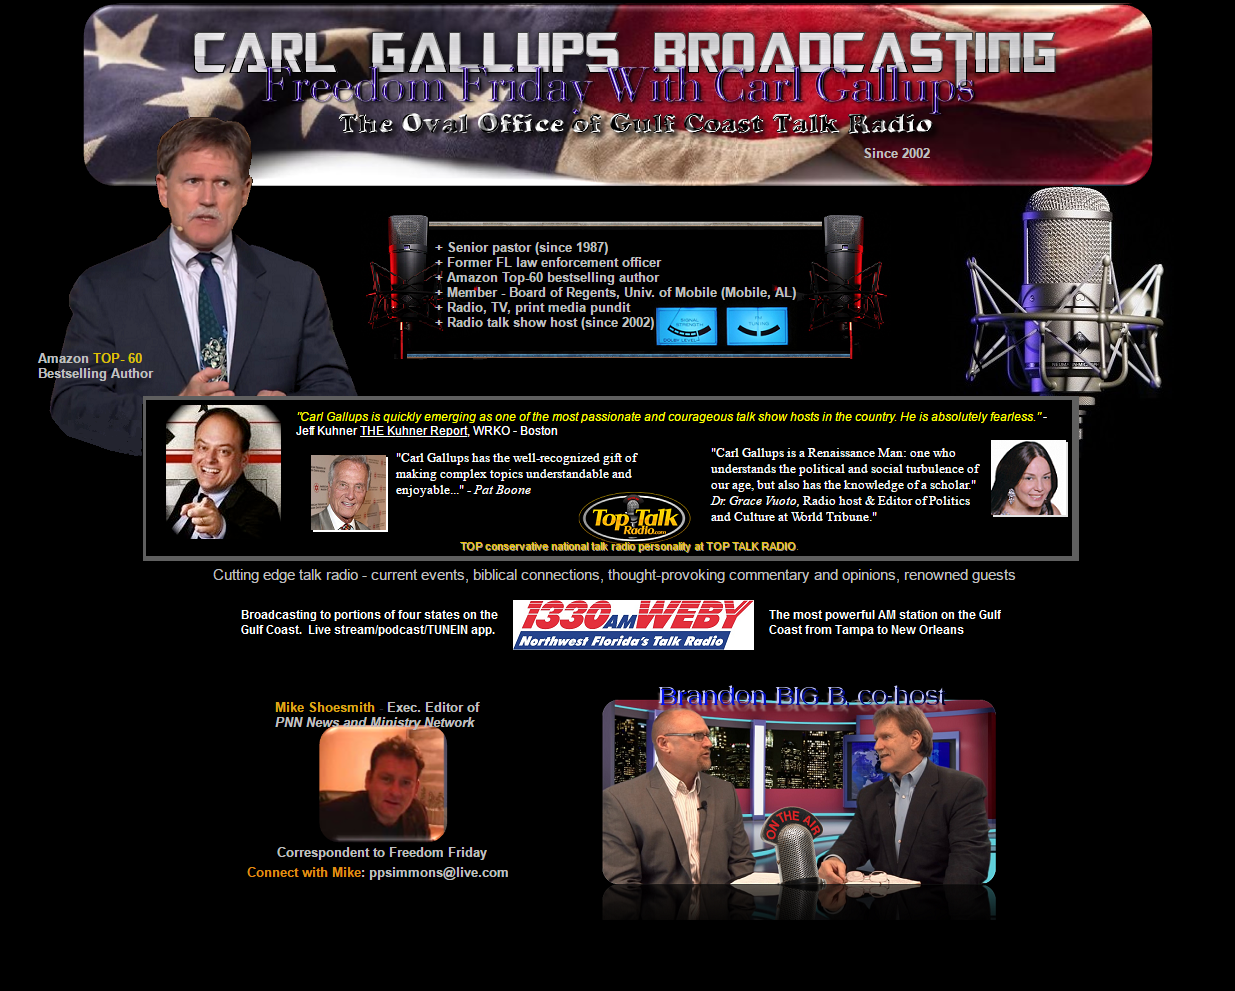 Freedom Friday With Carl Gallups | Carl Gallups Broadcasting